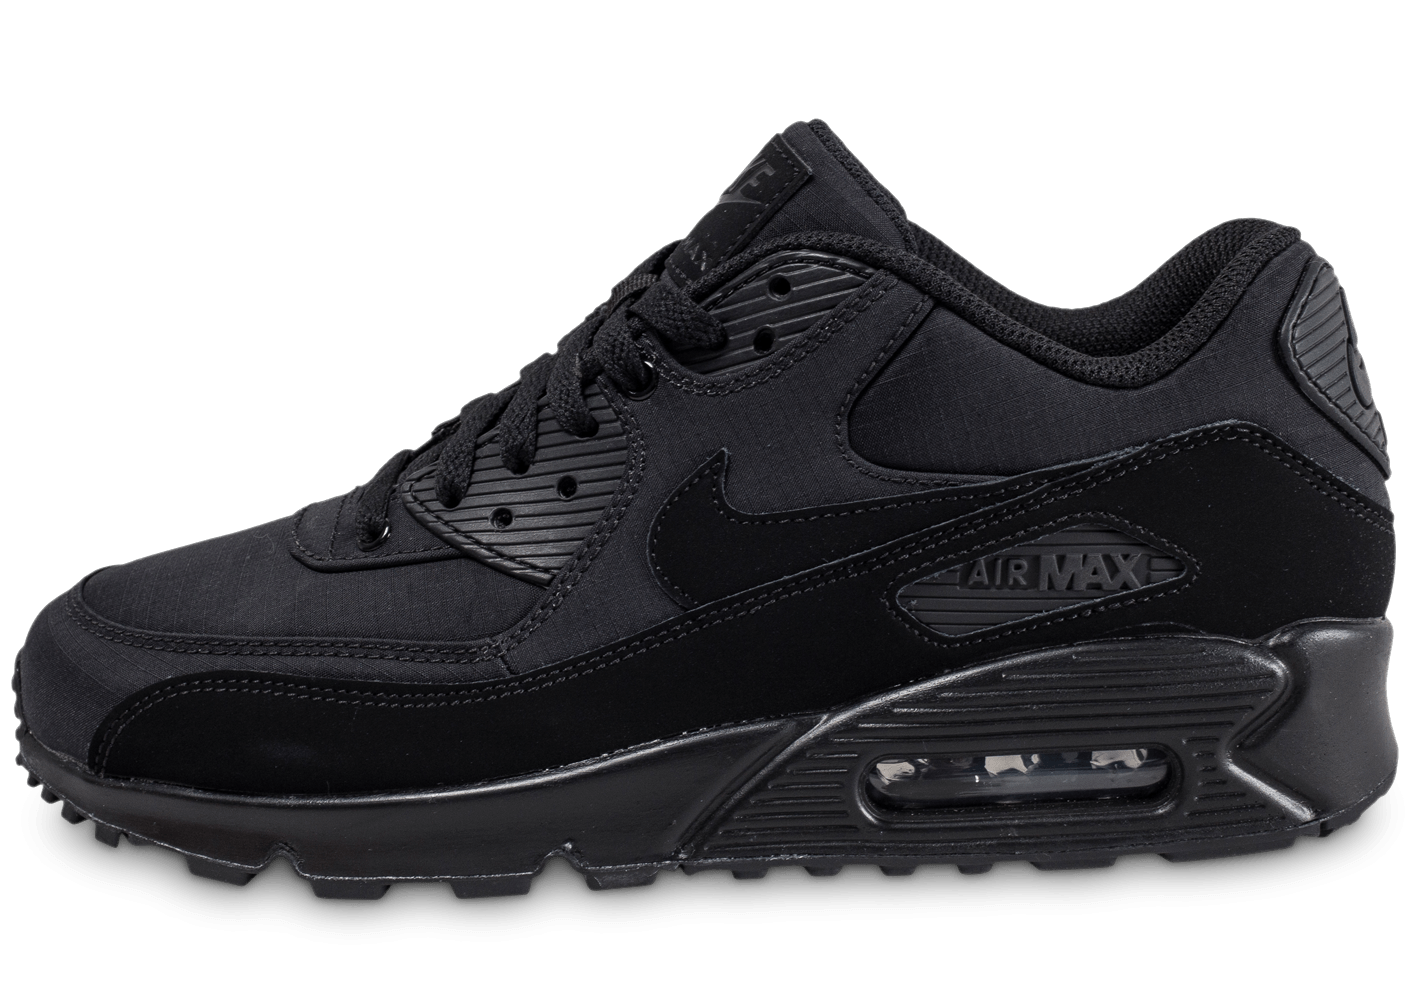 nike air max 90 essential noir,nike air max 90 essential noir